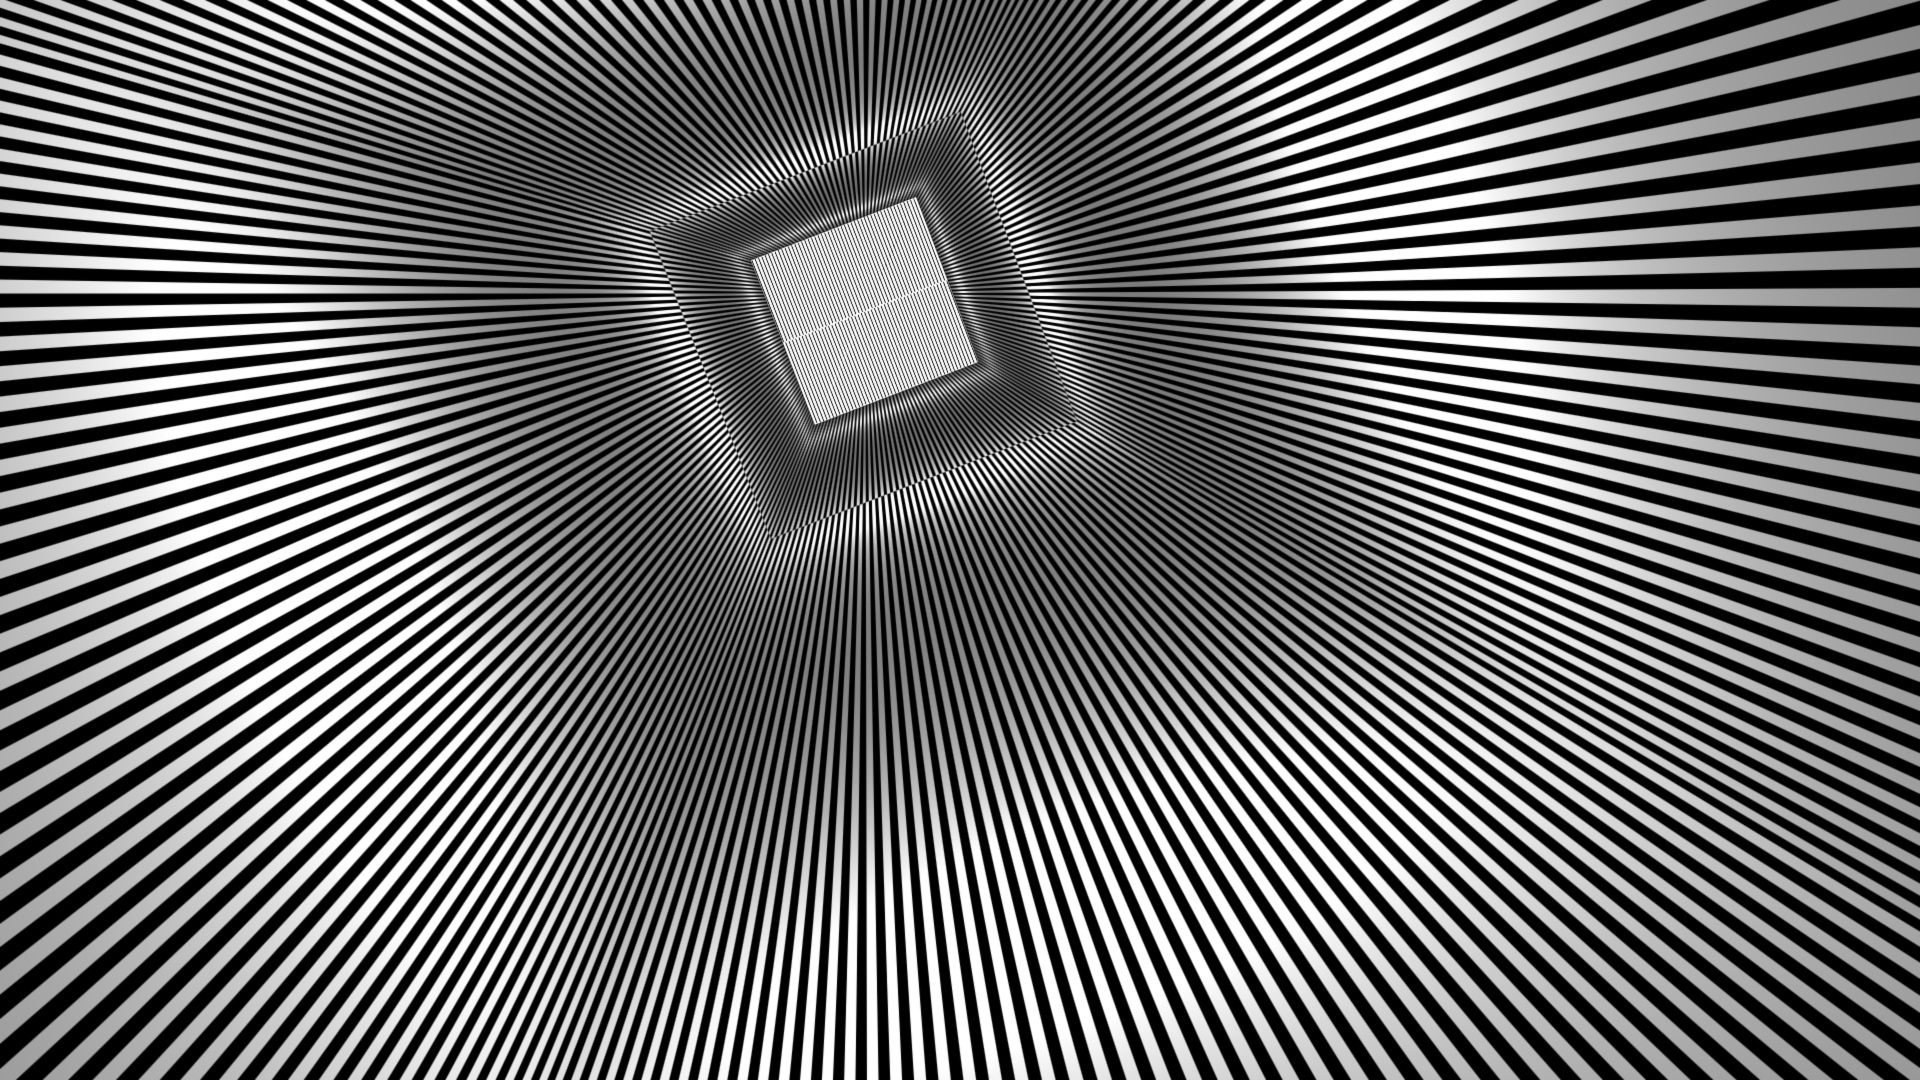 Square Optical Illusion Wallpaper 44003 1920x1080 Px